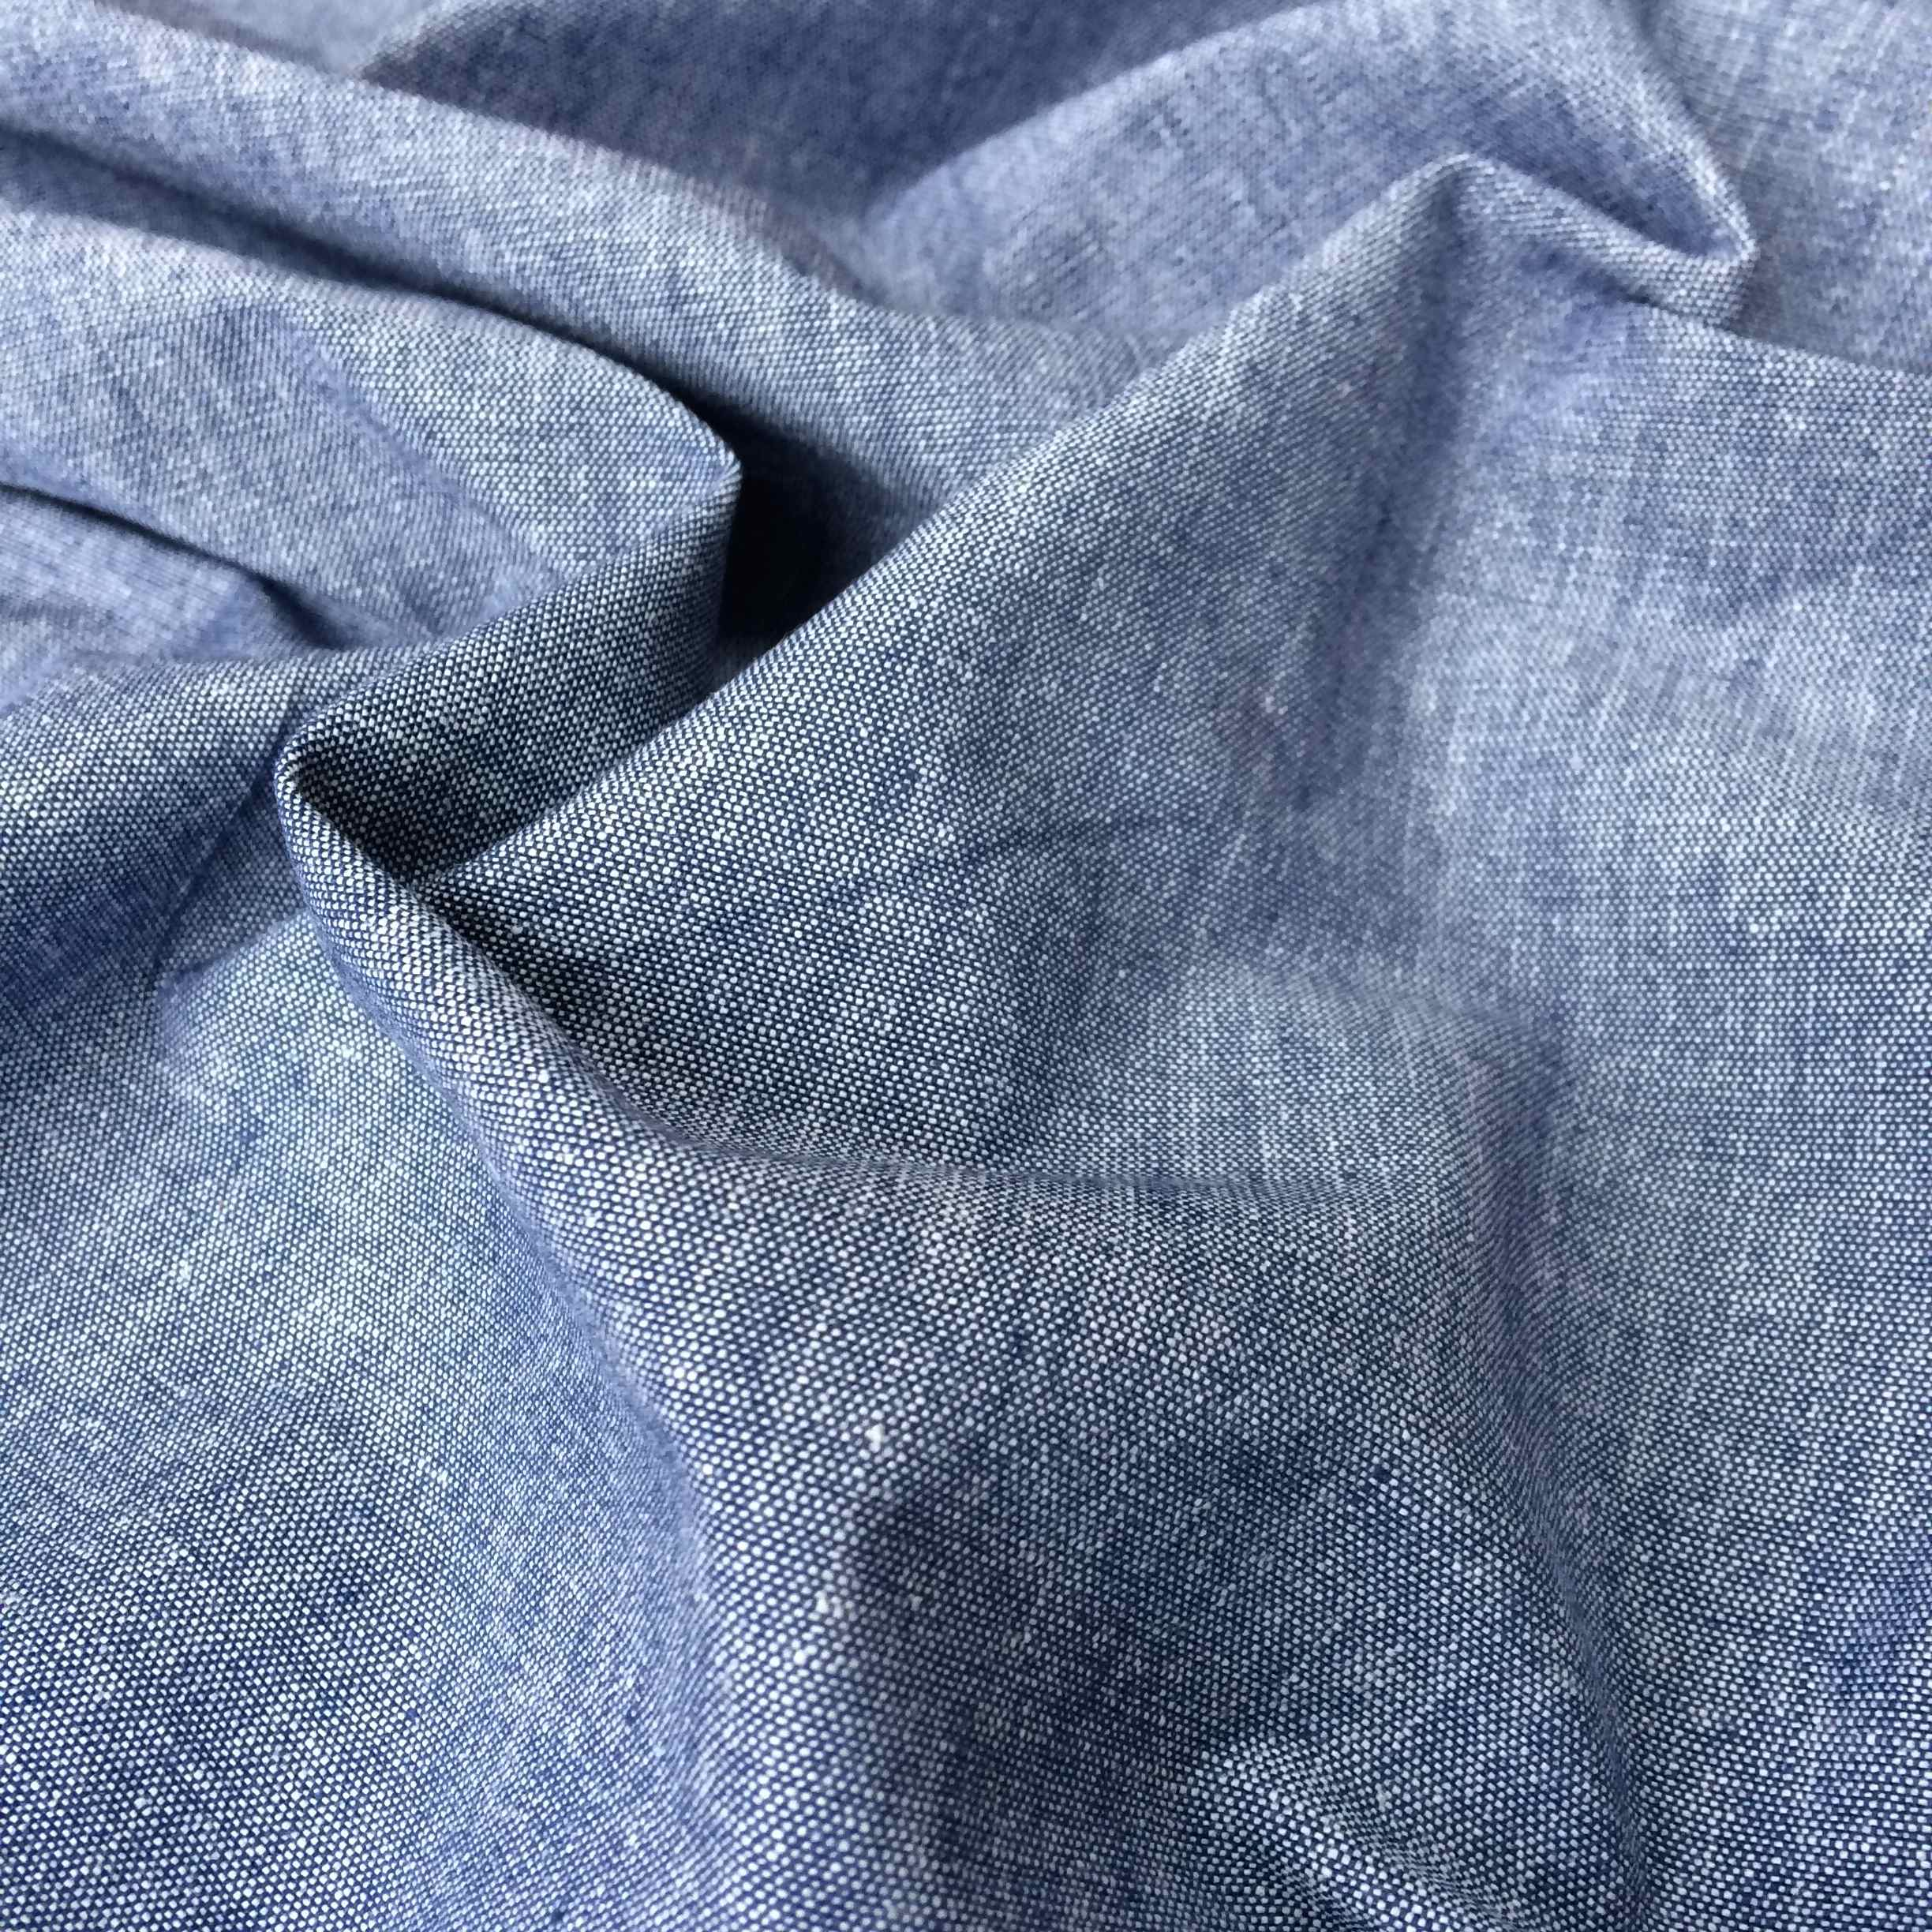 100% Organic Cotton Crossweave Fabric Mid Blue